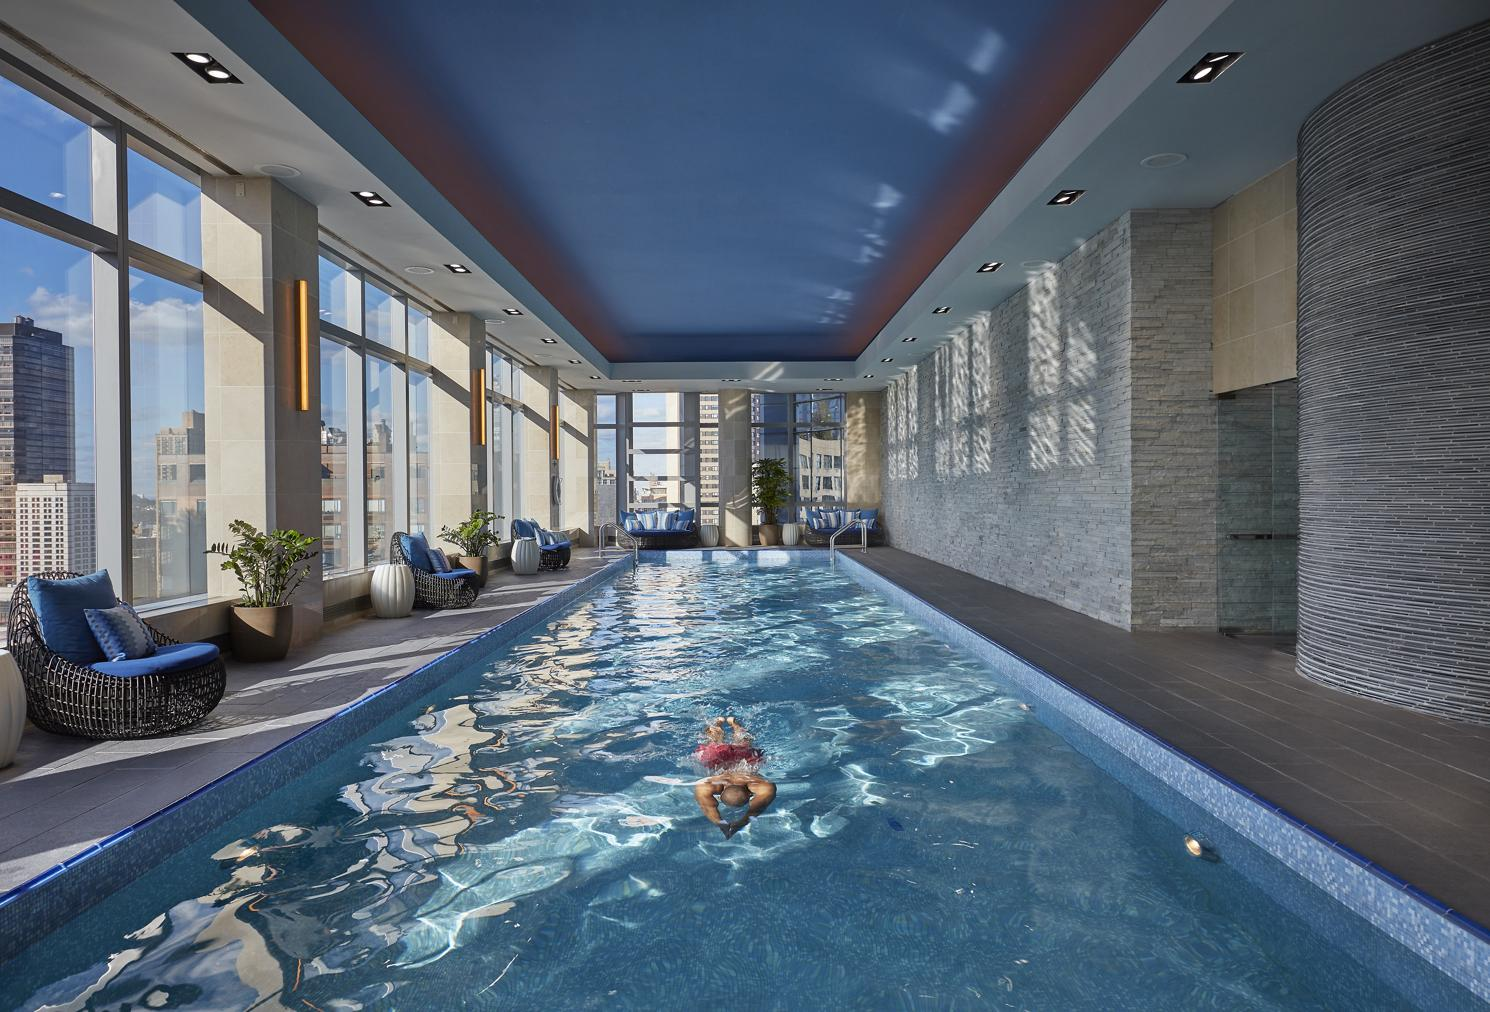 Stack Mandarin Oriental Amex Offer and Fine Hotels and Resorts for Savings and Benefits